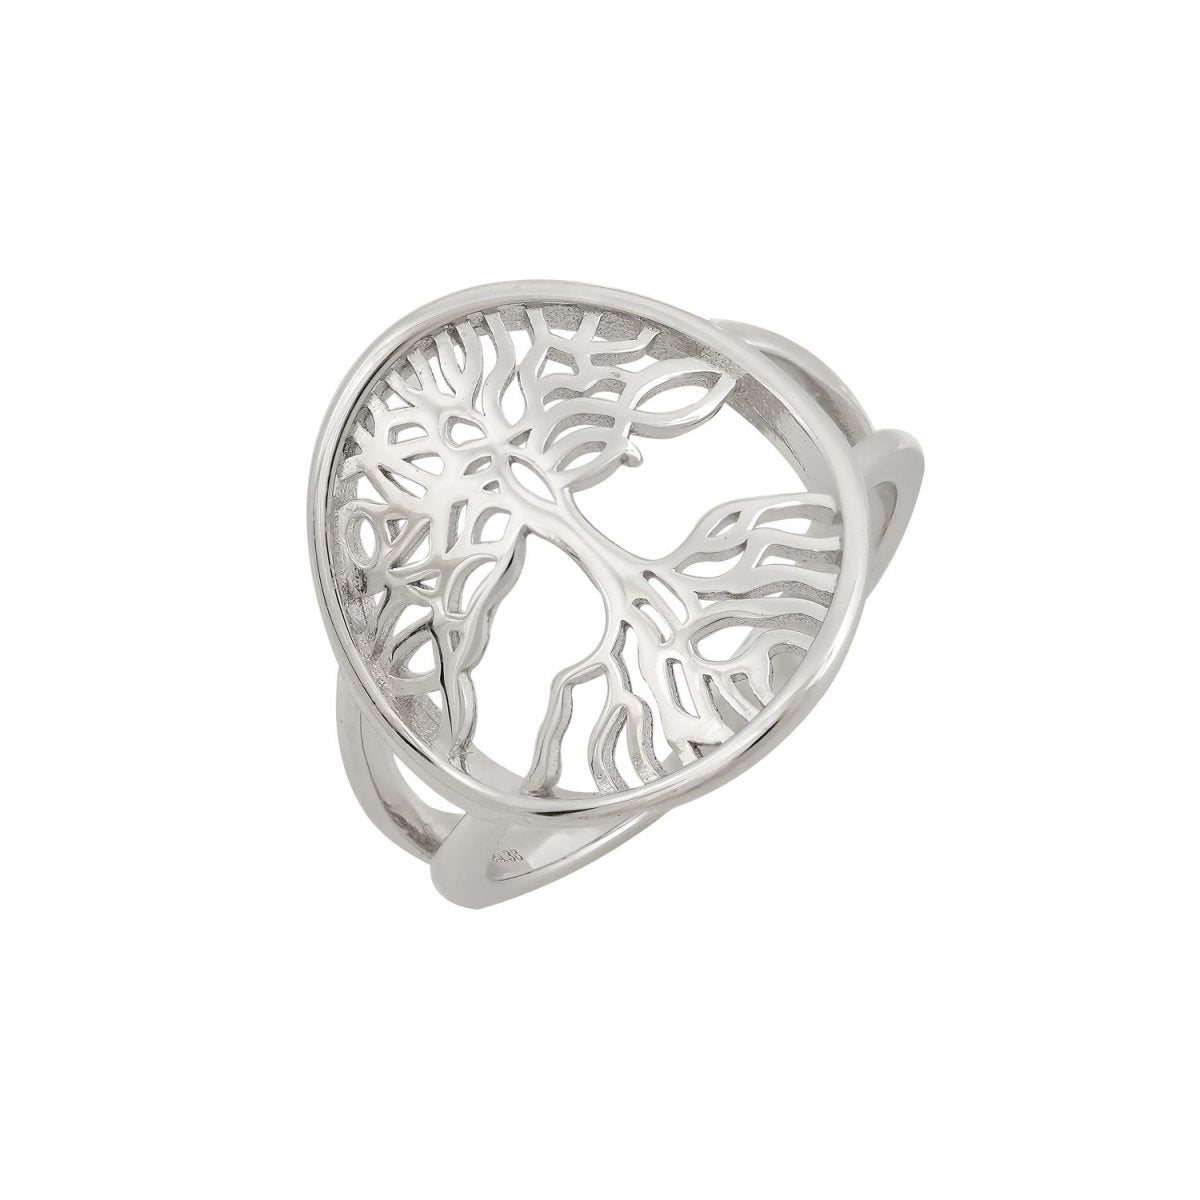 Ring Tree of Life RS3426 Platinum Plating - Goldy Jewelry Store